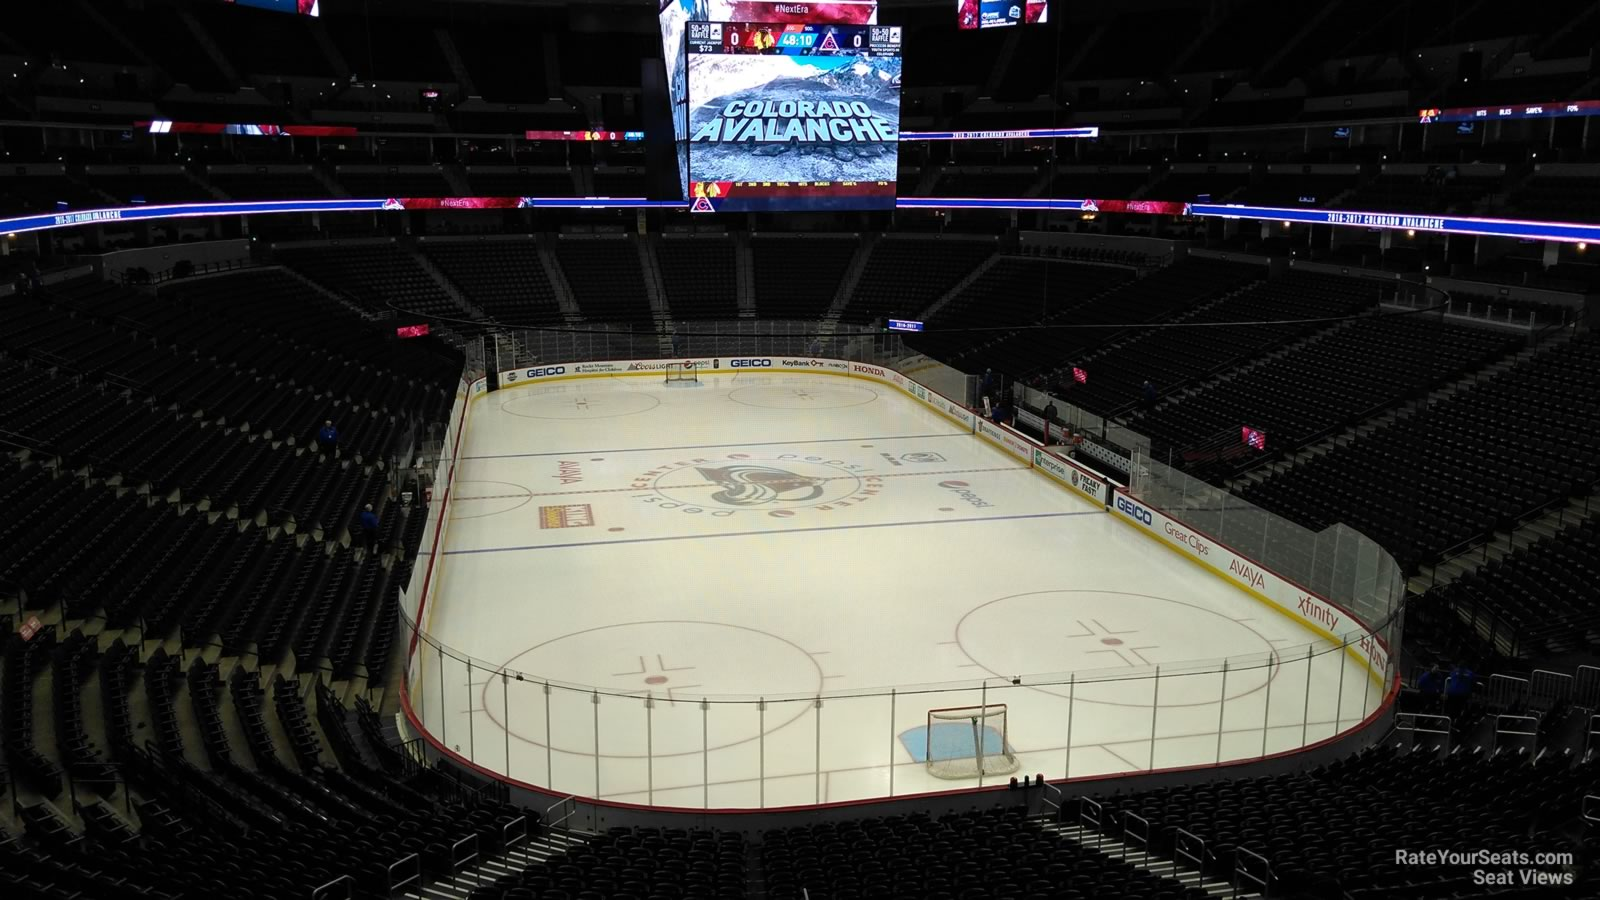 Section 218 seat view